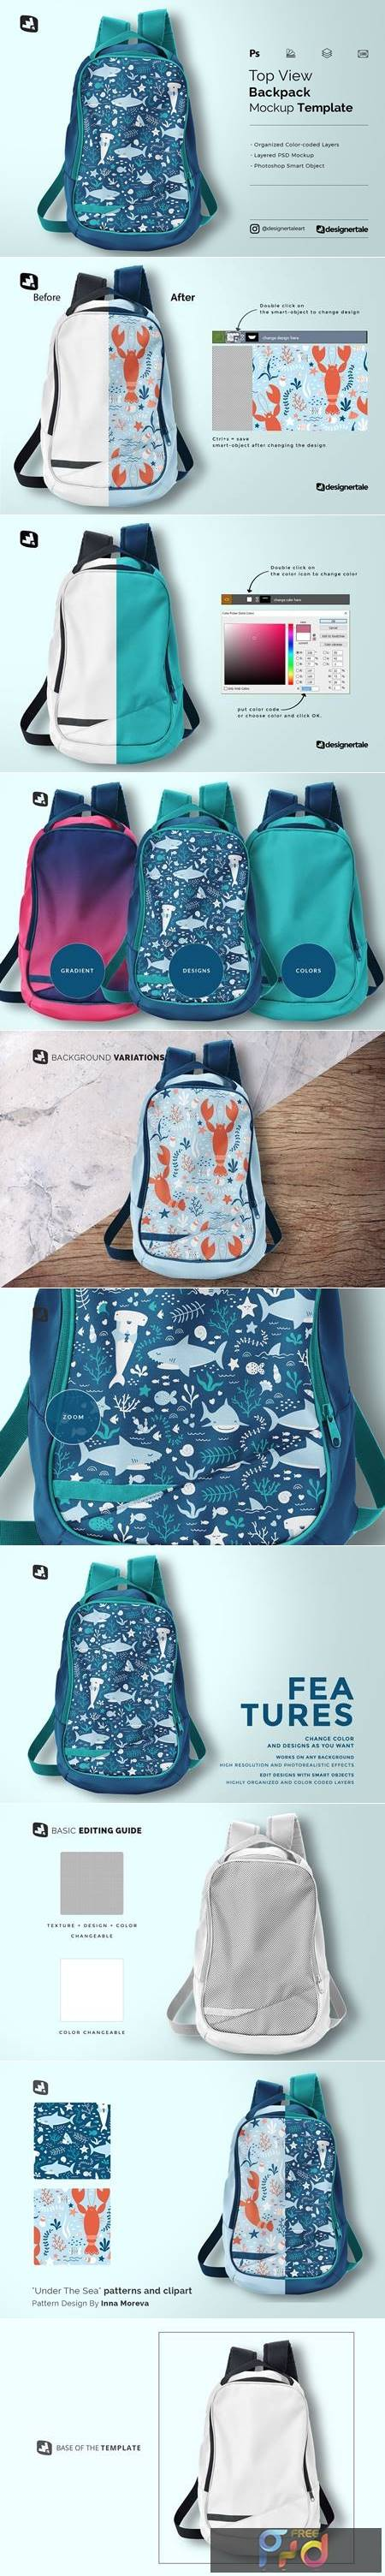 Top View Backpack Mockup 5345372 1